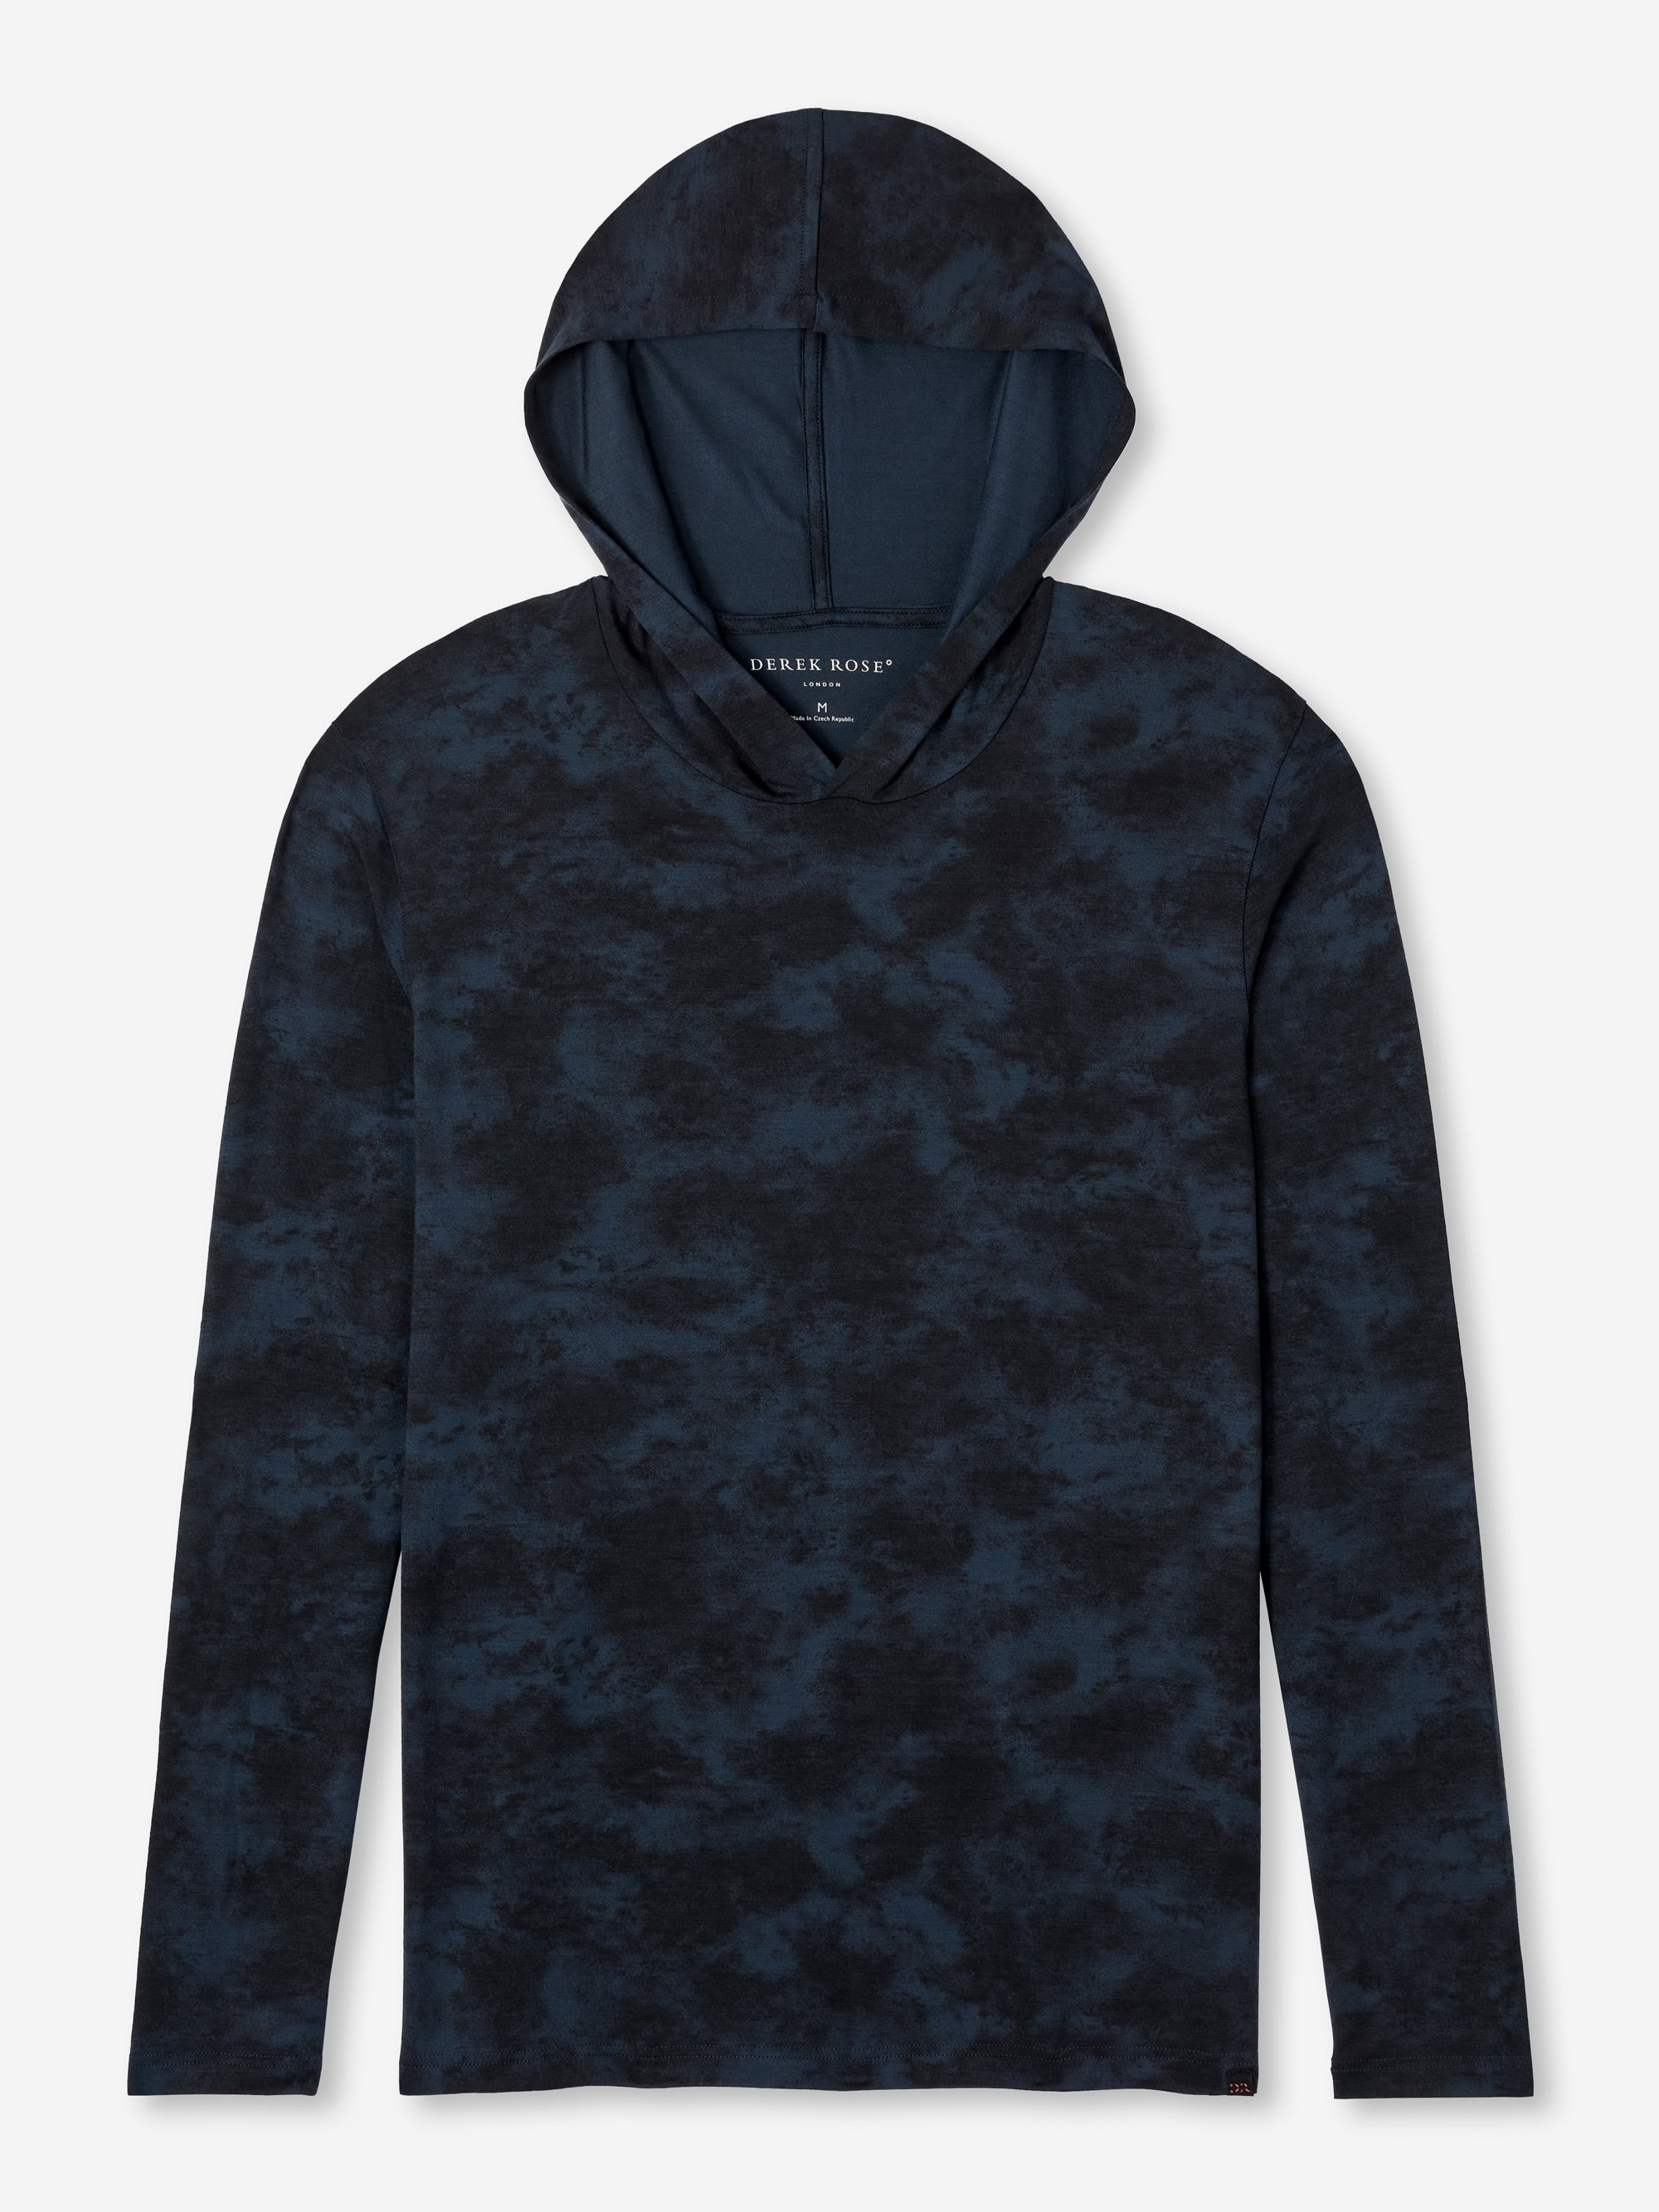 Men's Jersey Pullover Hoodie London 4 Micro Modal Stretch Navy